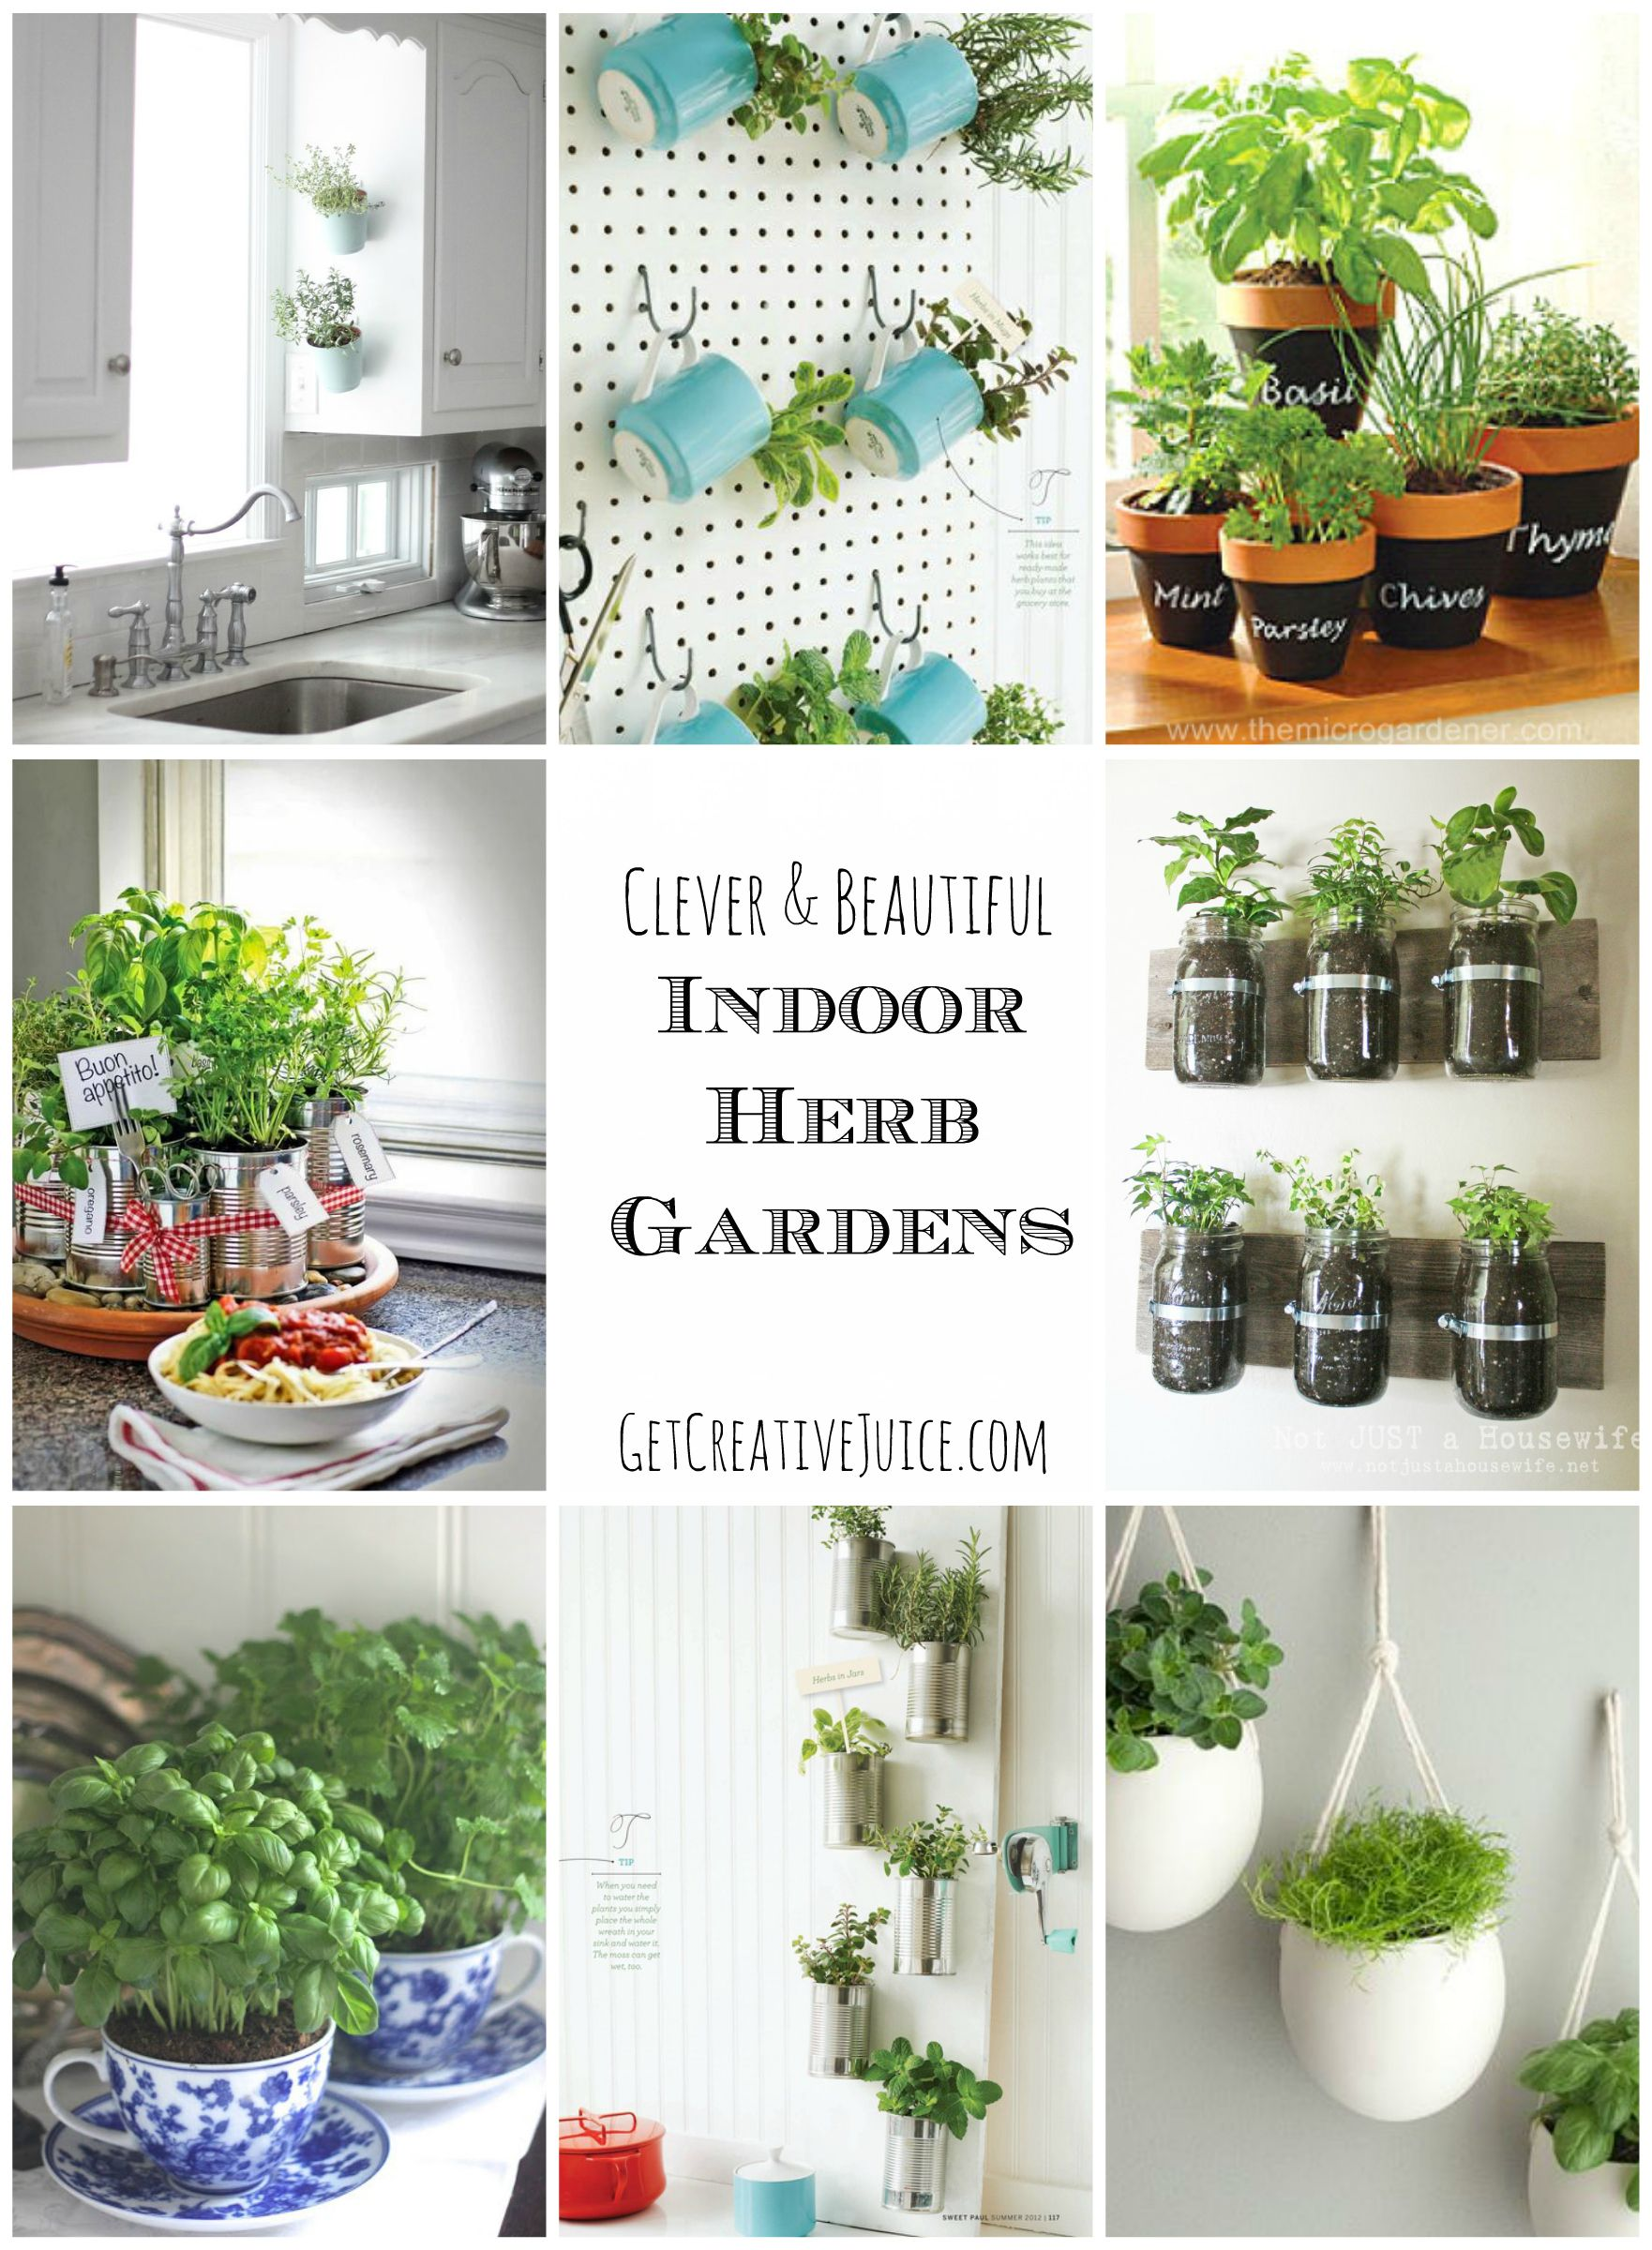 indoor herb garden ideas creative beautiful and easy ideas for growing an herb garden in. Black Bedroom Furniture Sets. Home Design Ideas